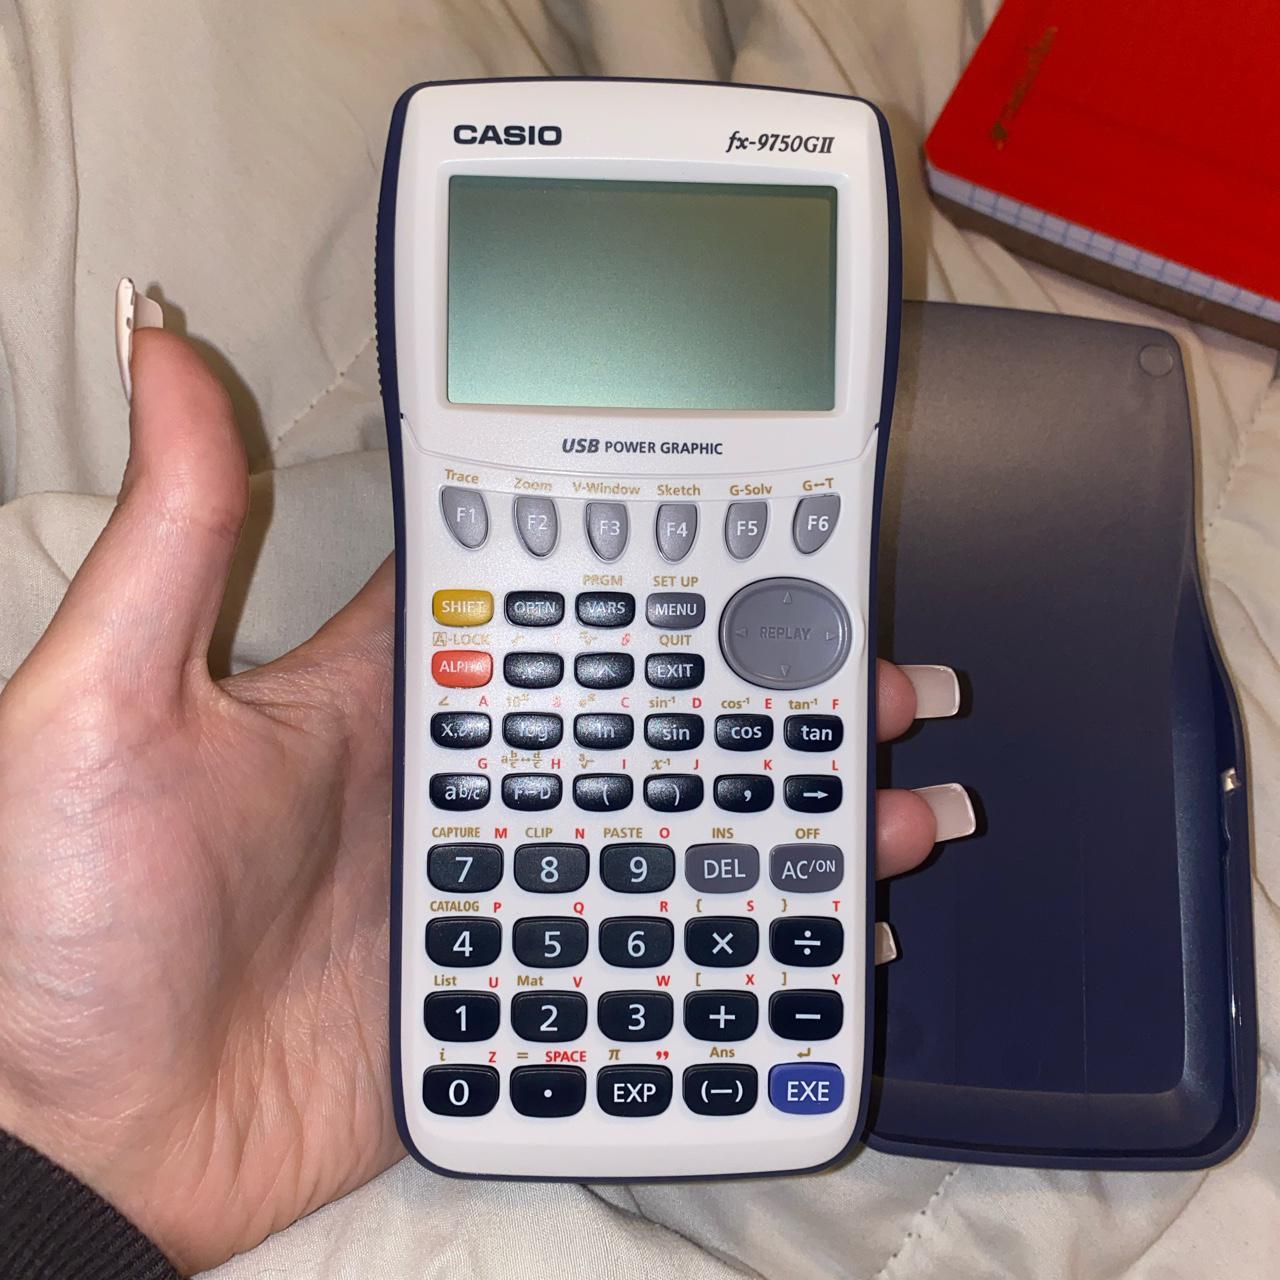 Product Image 1 - casio fx-9750GII calculator! this is